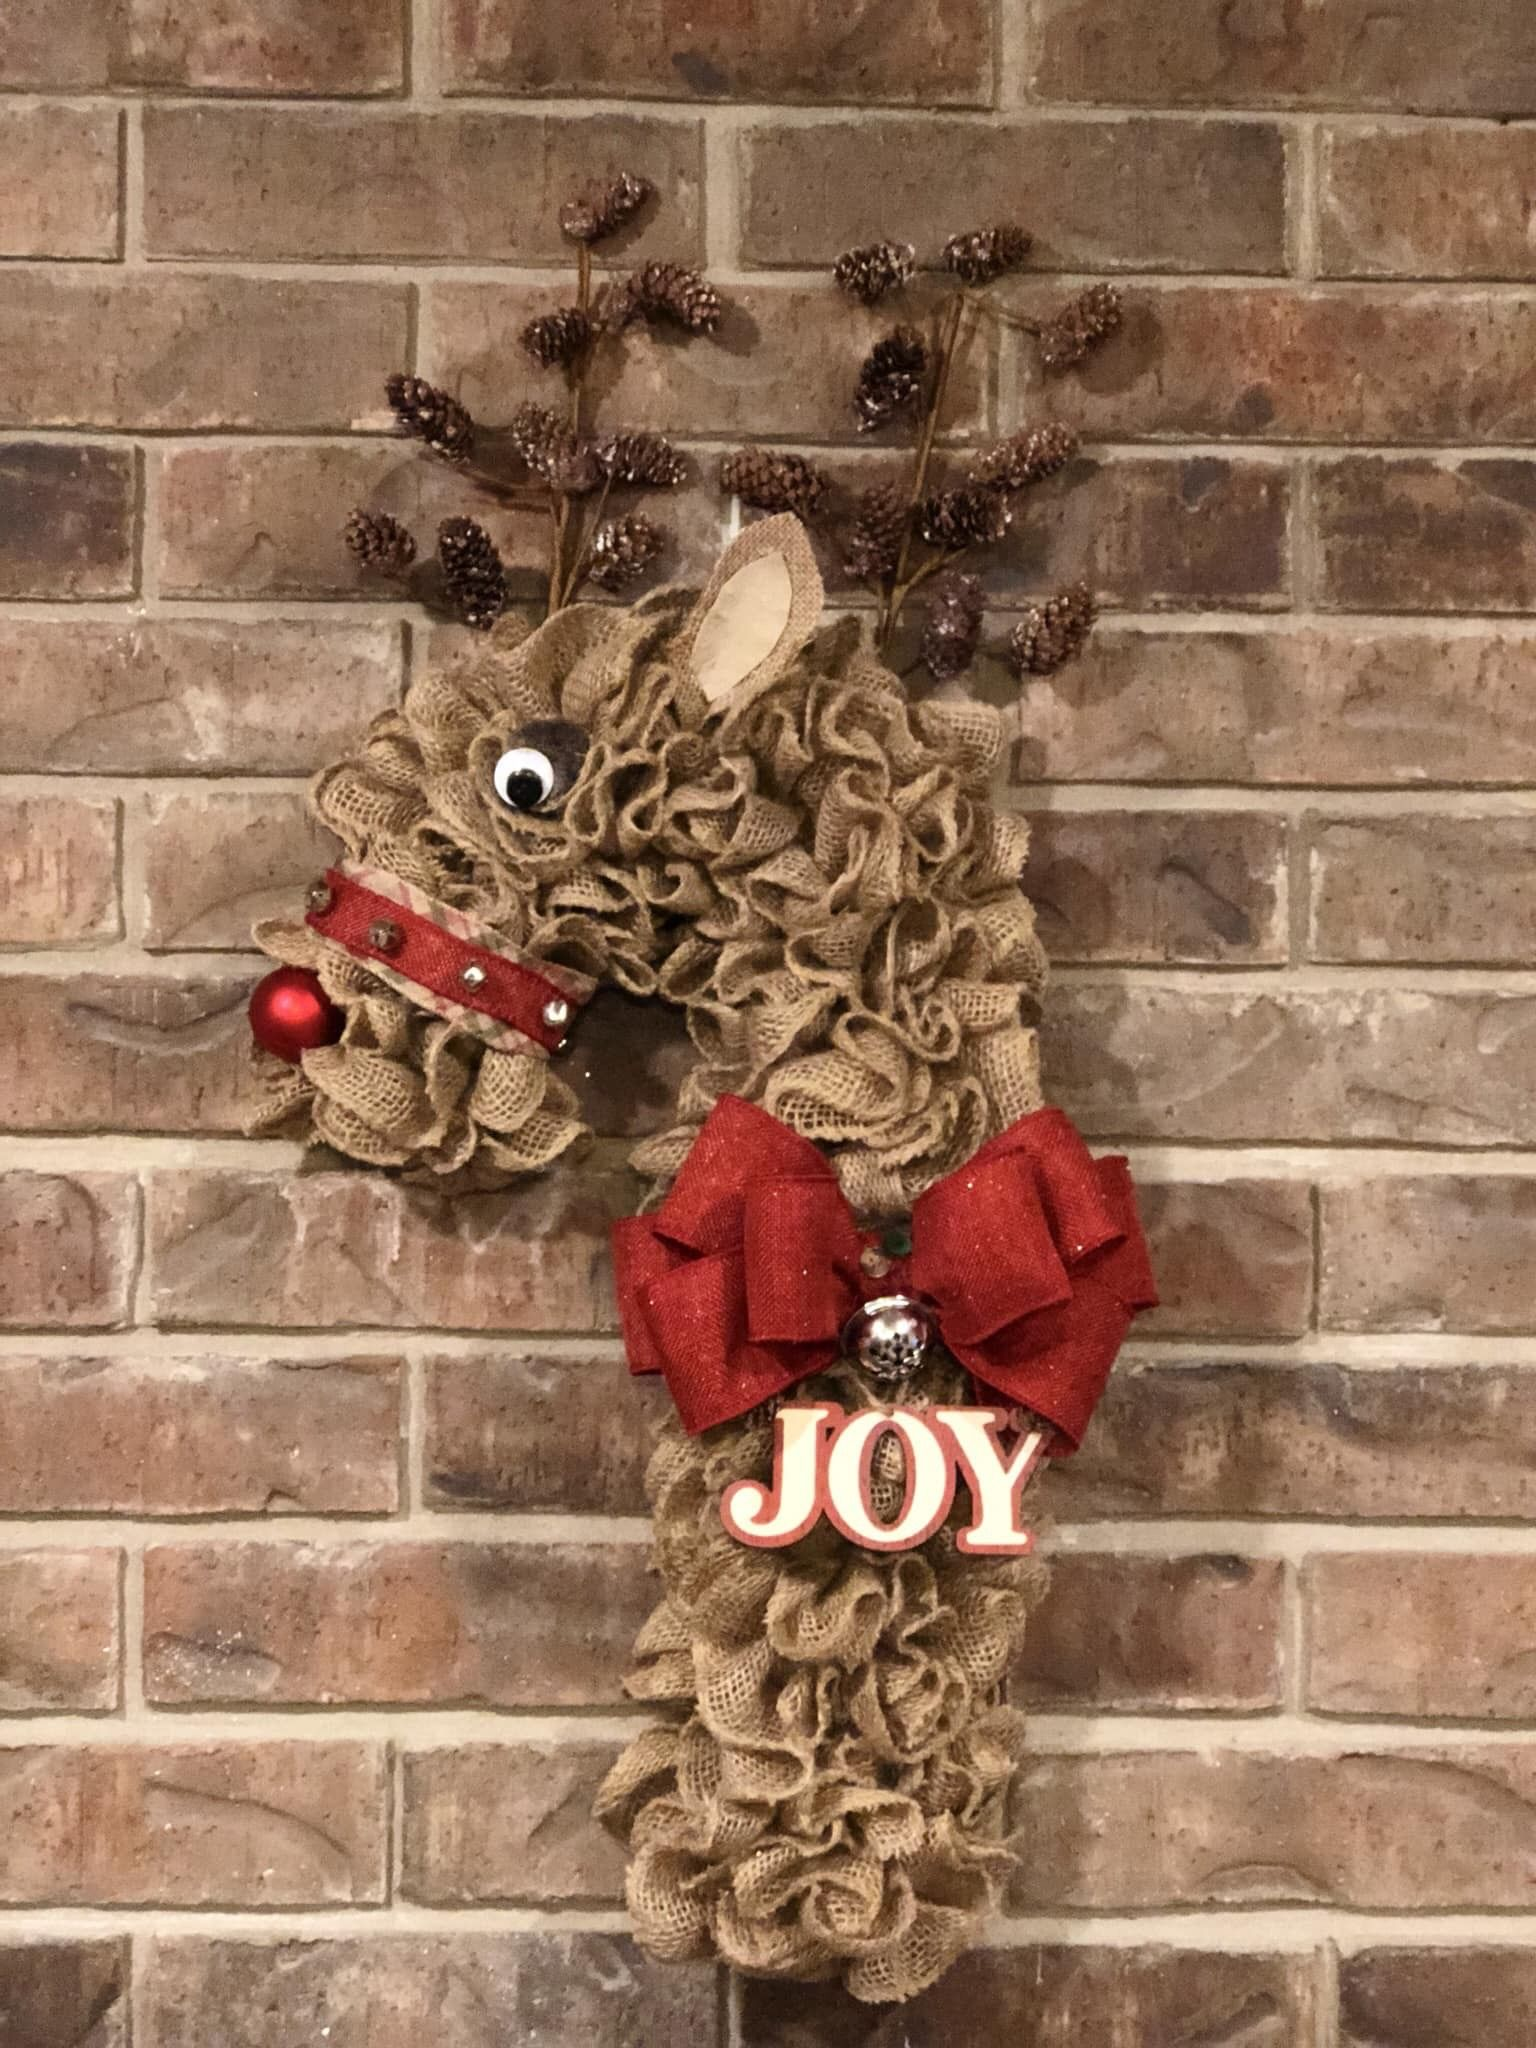 My try at the Reindeer candy cane wreath! #reindeerwreath #wreath #Christmaswreath #candycanewreath